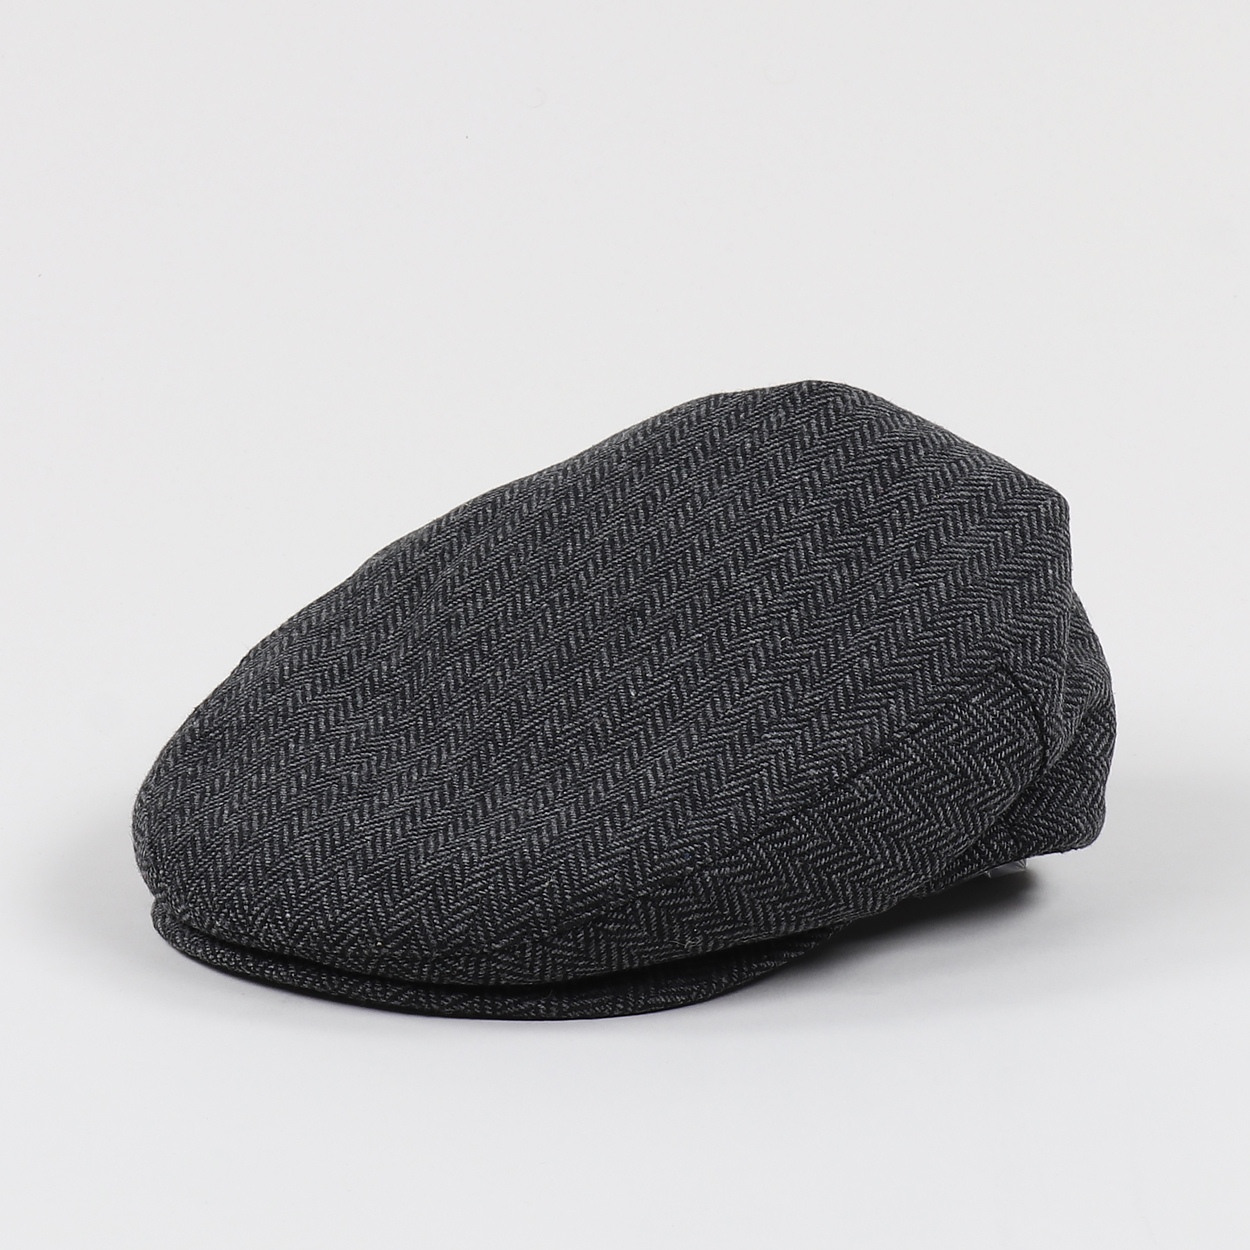 Brixton Mens Cotton Hooligan Flat Cap Scally Hat Grey Black £26.25 478a77f93154